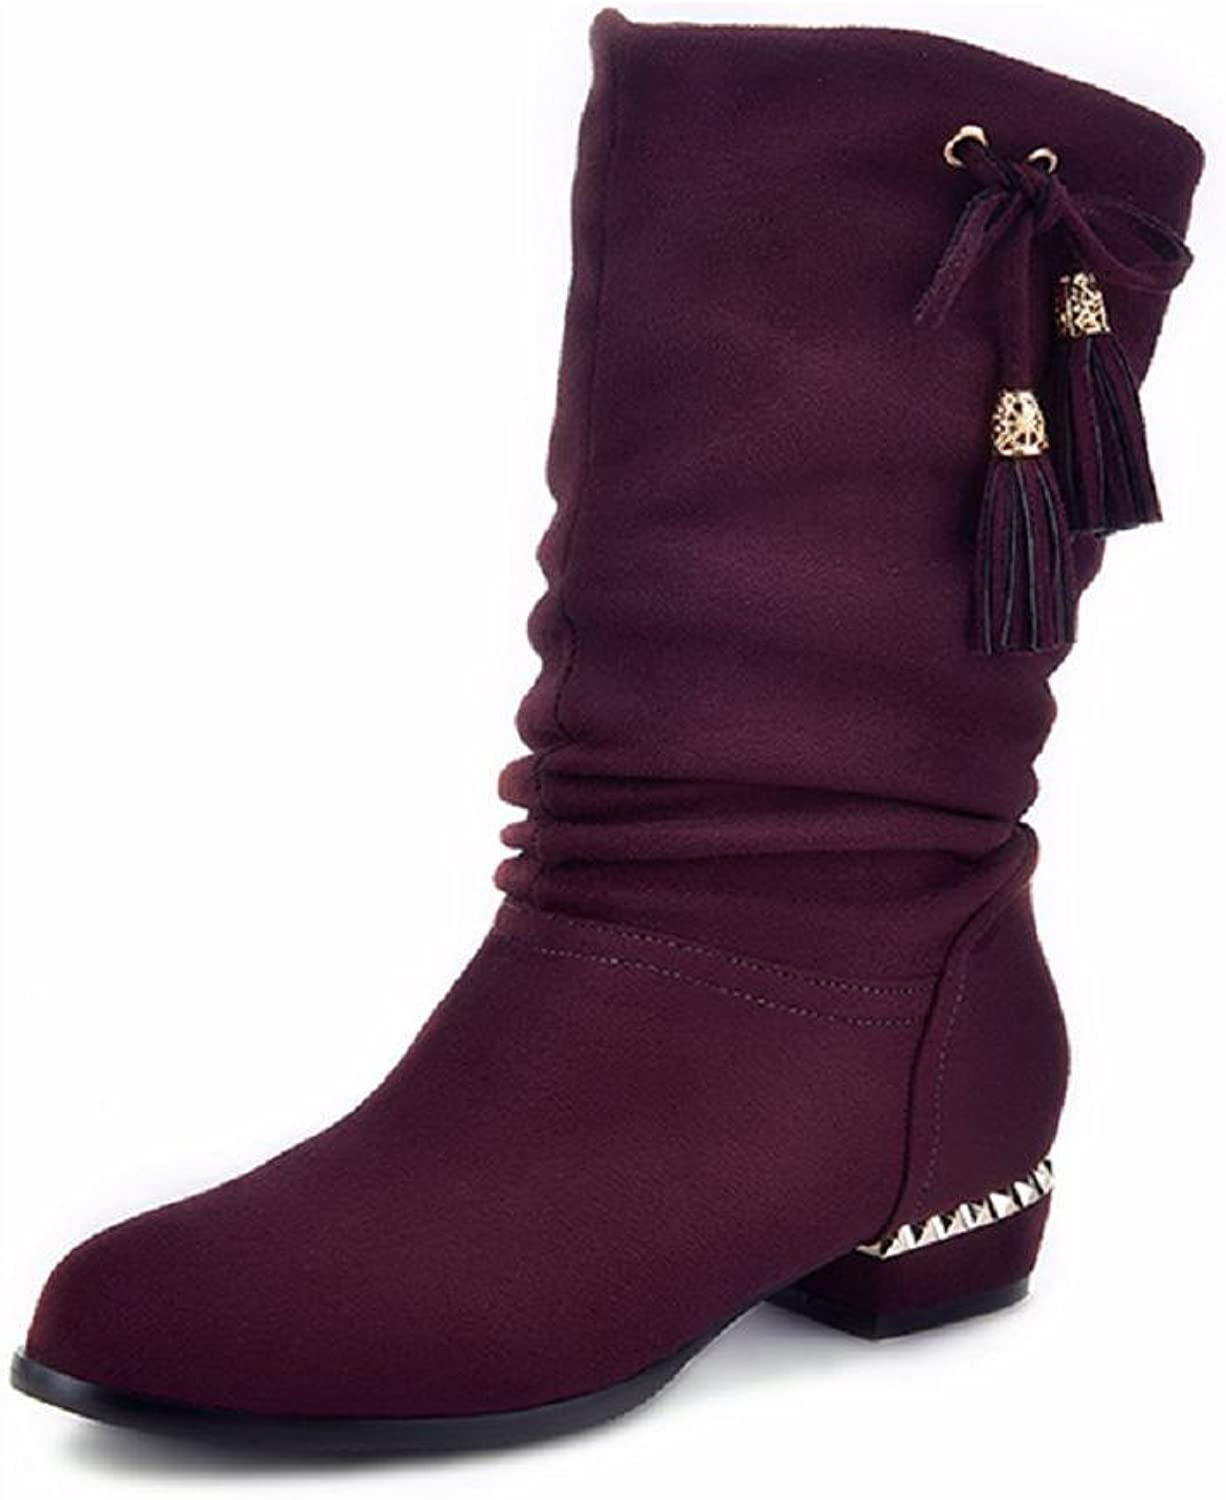 AmoonyFashion Women's Round Closed Toe Low Heels Frosted Mid Top Solid Boots